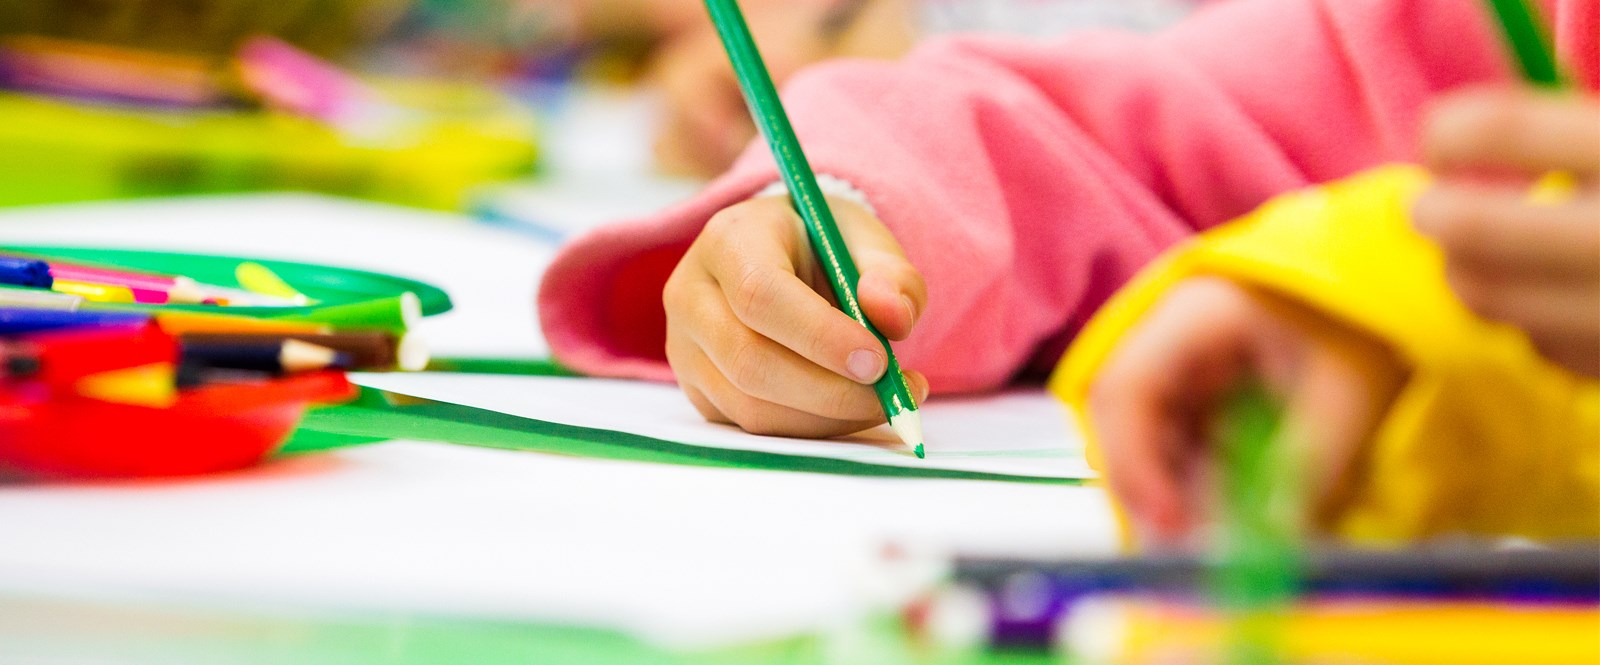 colour image of a kid colouring